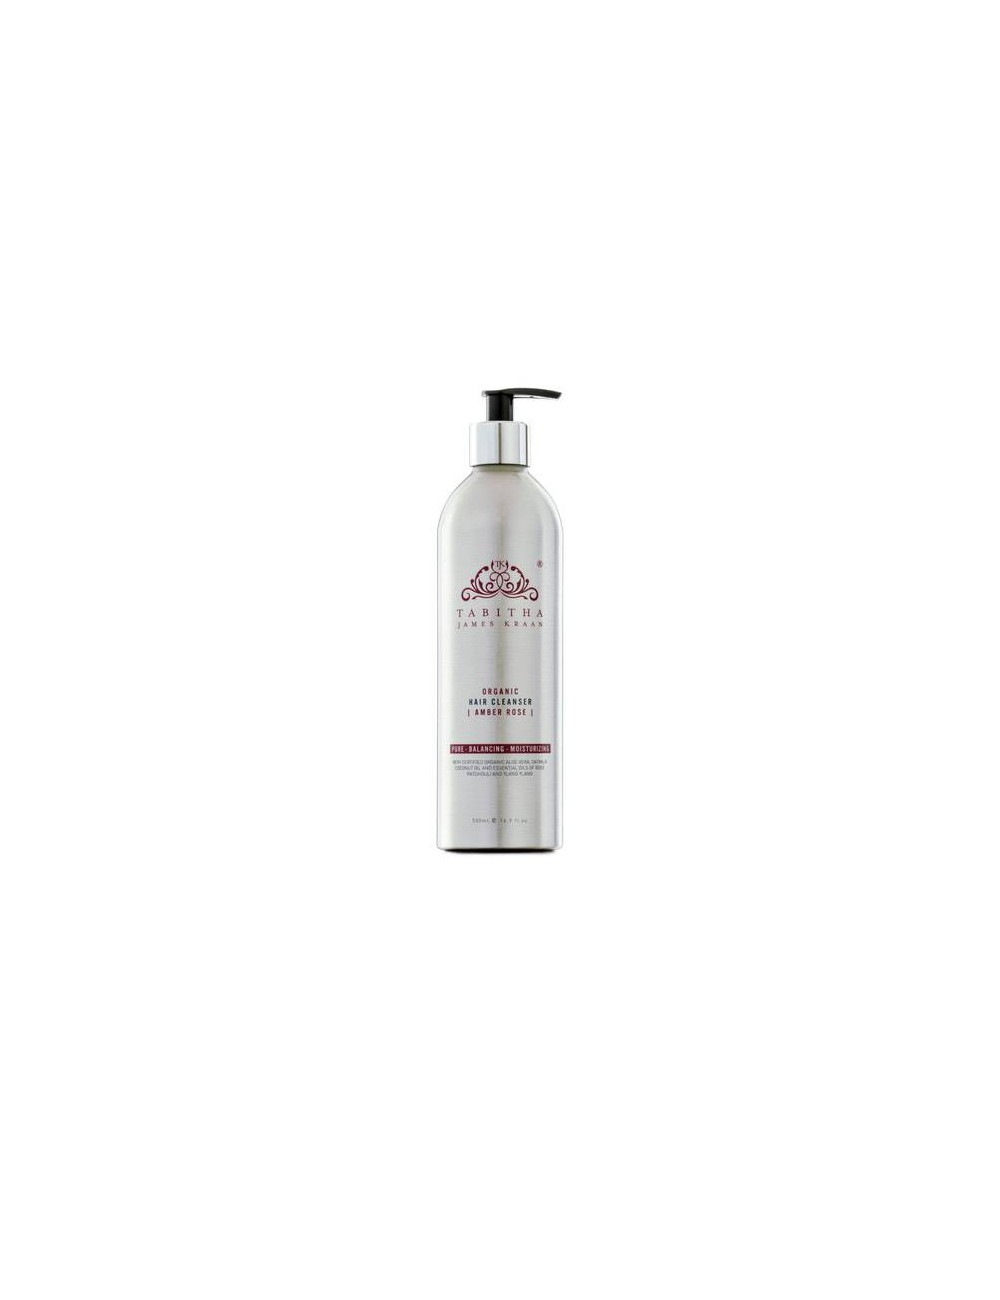 TJK Lagre Size Amber Rose Hair Cleanser 500ml